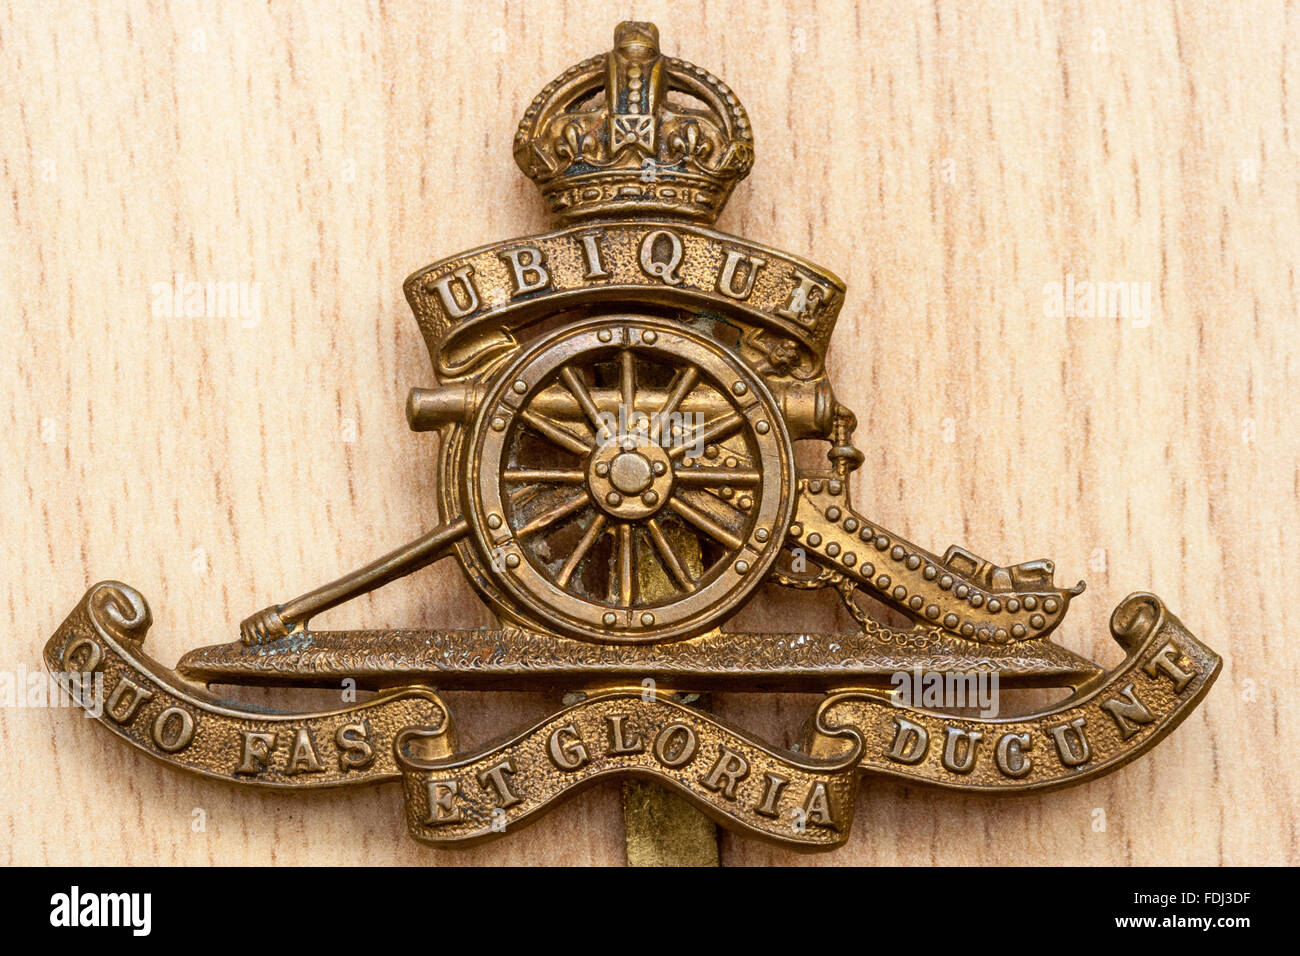 09407ff529a British army cap badge of the Royal Horse artillery on wood grain  background.